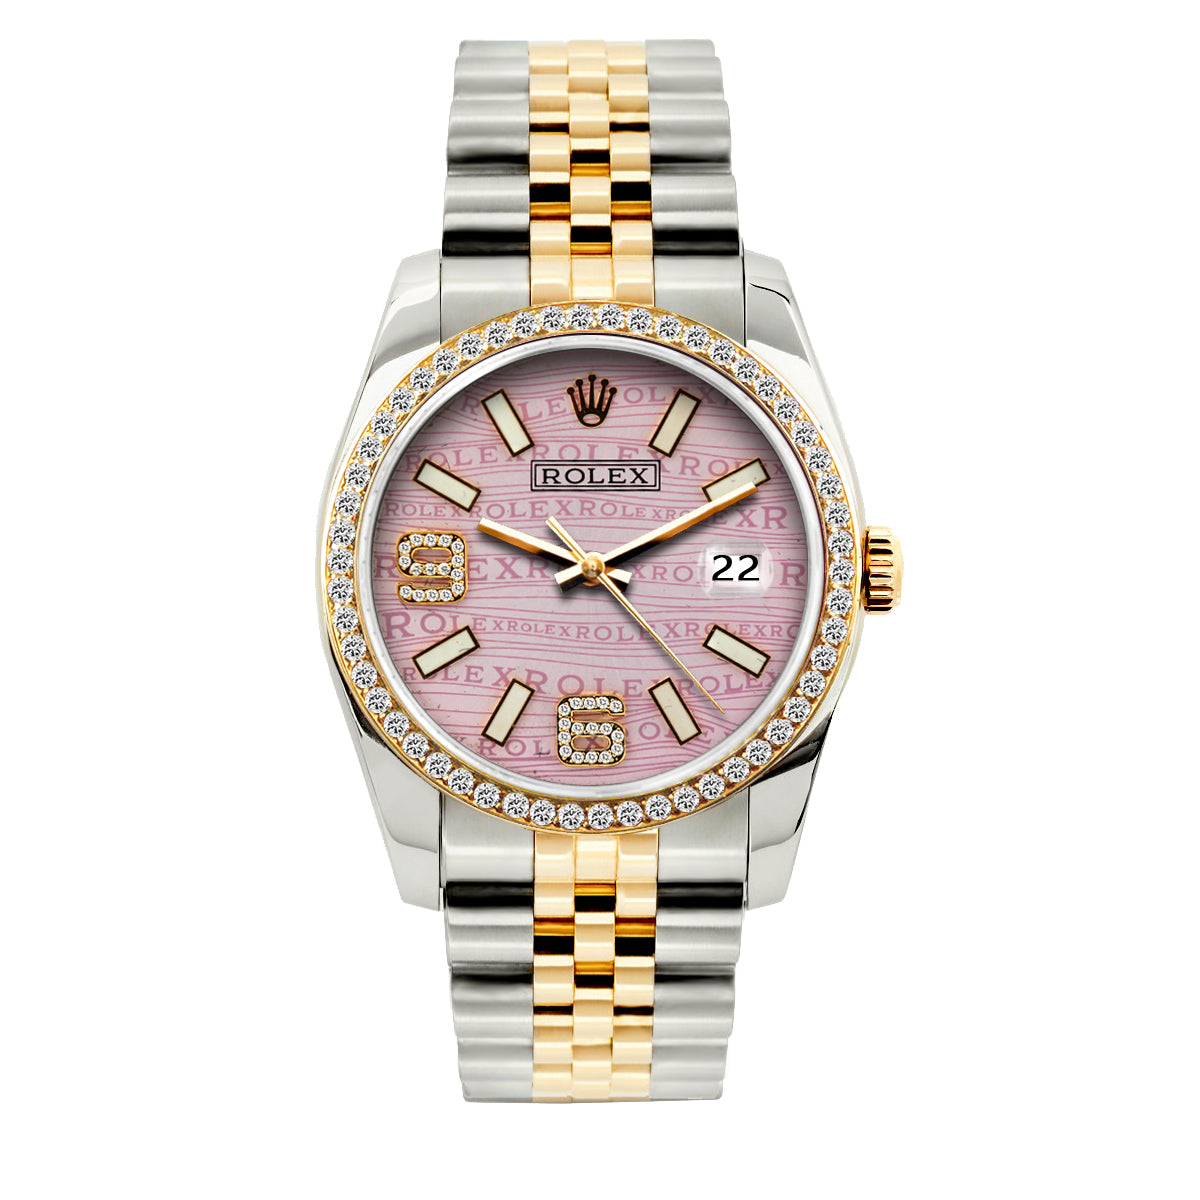 Rolex Datejust 36mm Yellow Gold and Stainless Steel Bracelet Light Pink Rolex Dial w/ Diamond Bezel